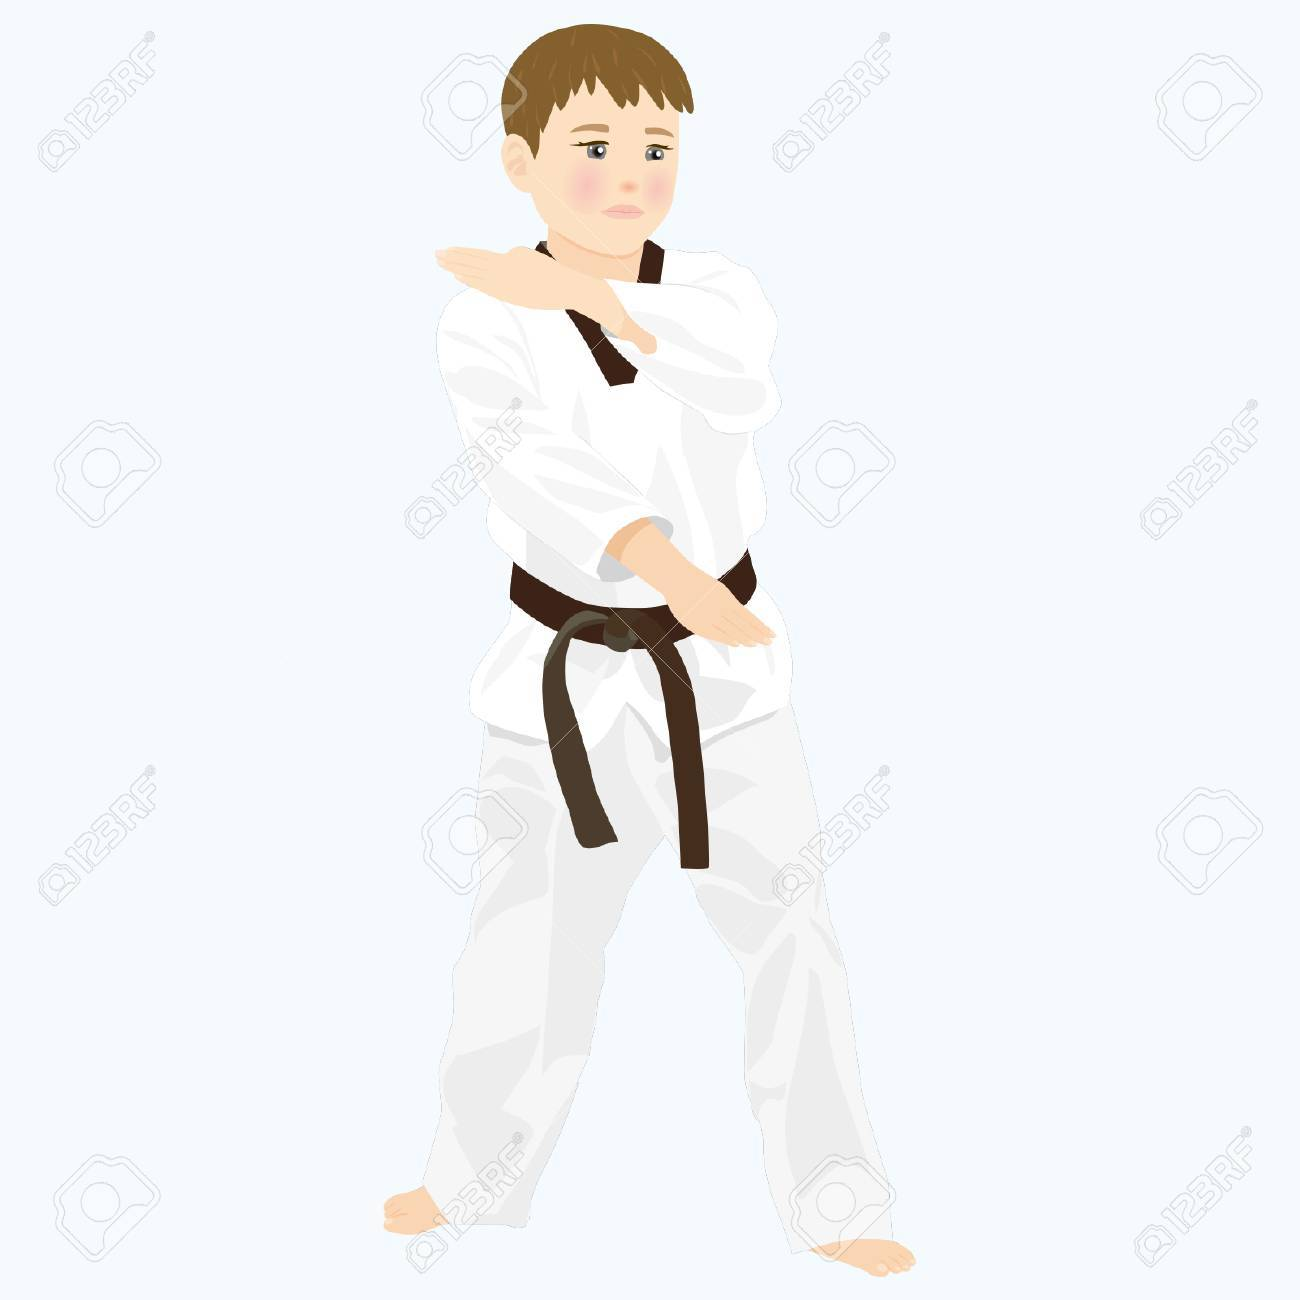 Techniques and Forms Tae Kwon Do Basics The Indomitable Martial Art of Korea